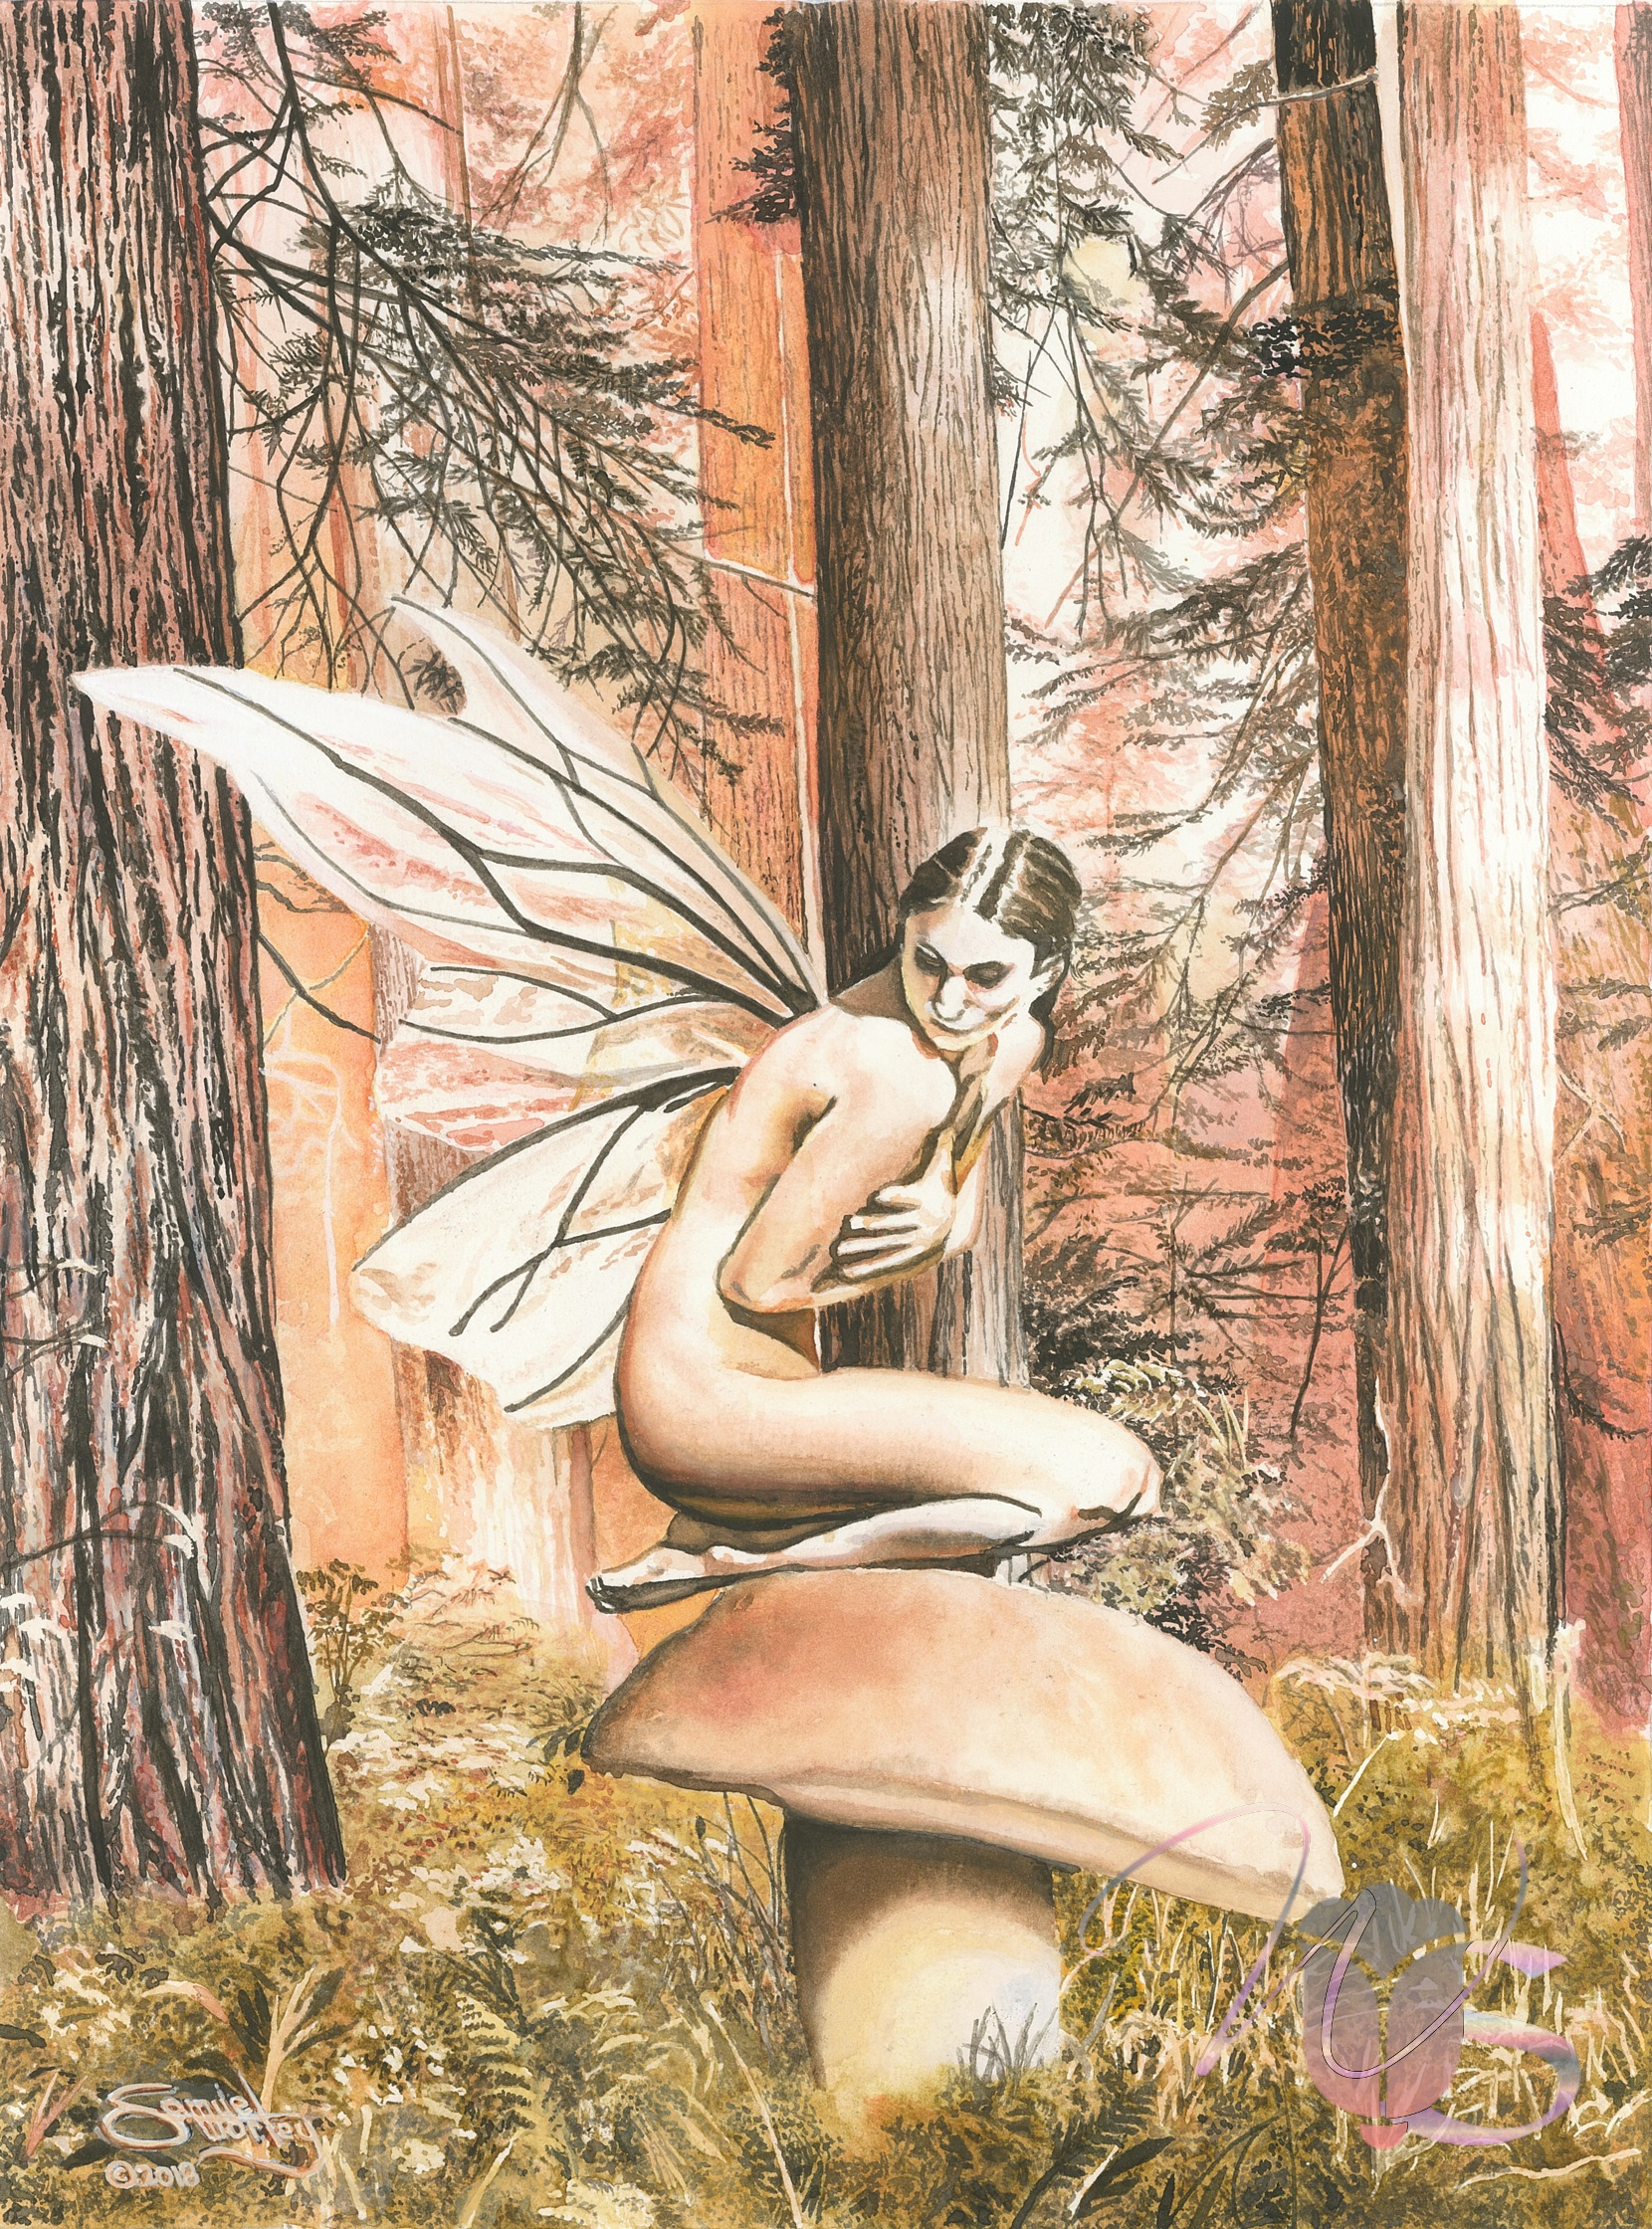 The Modest Fairy, an Original Watercolor by: Samuel Worley